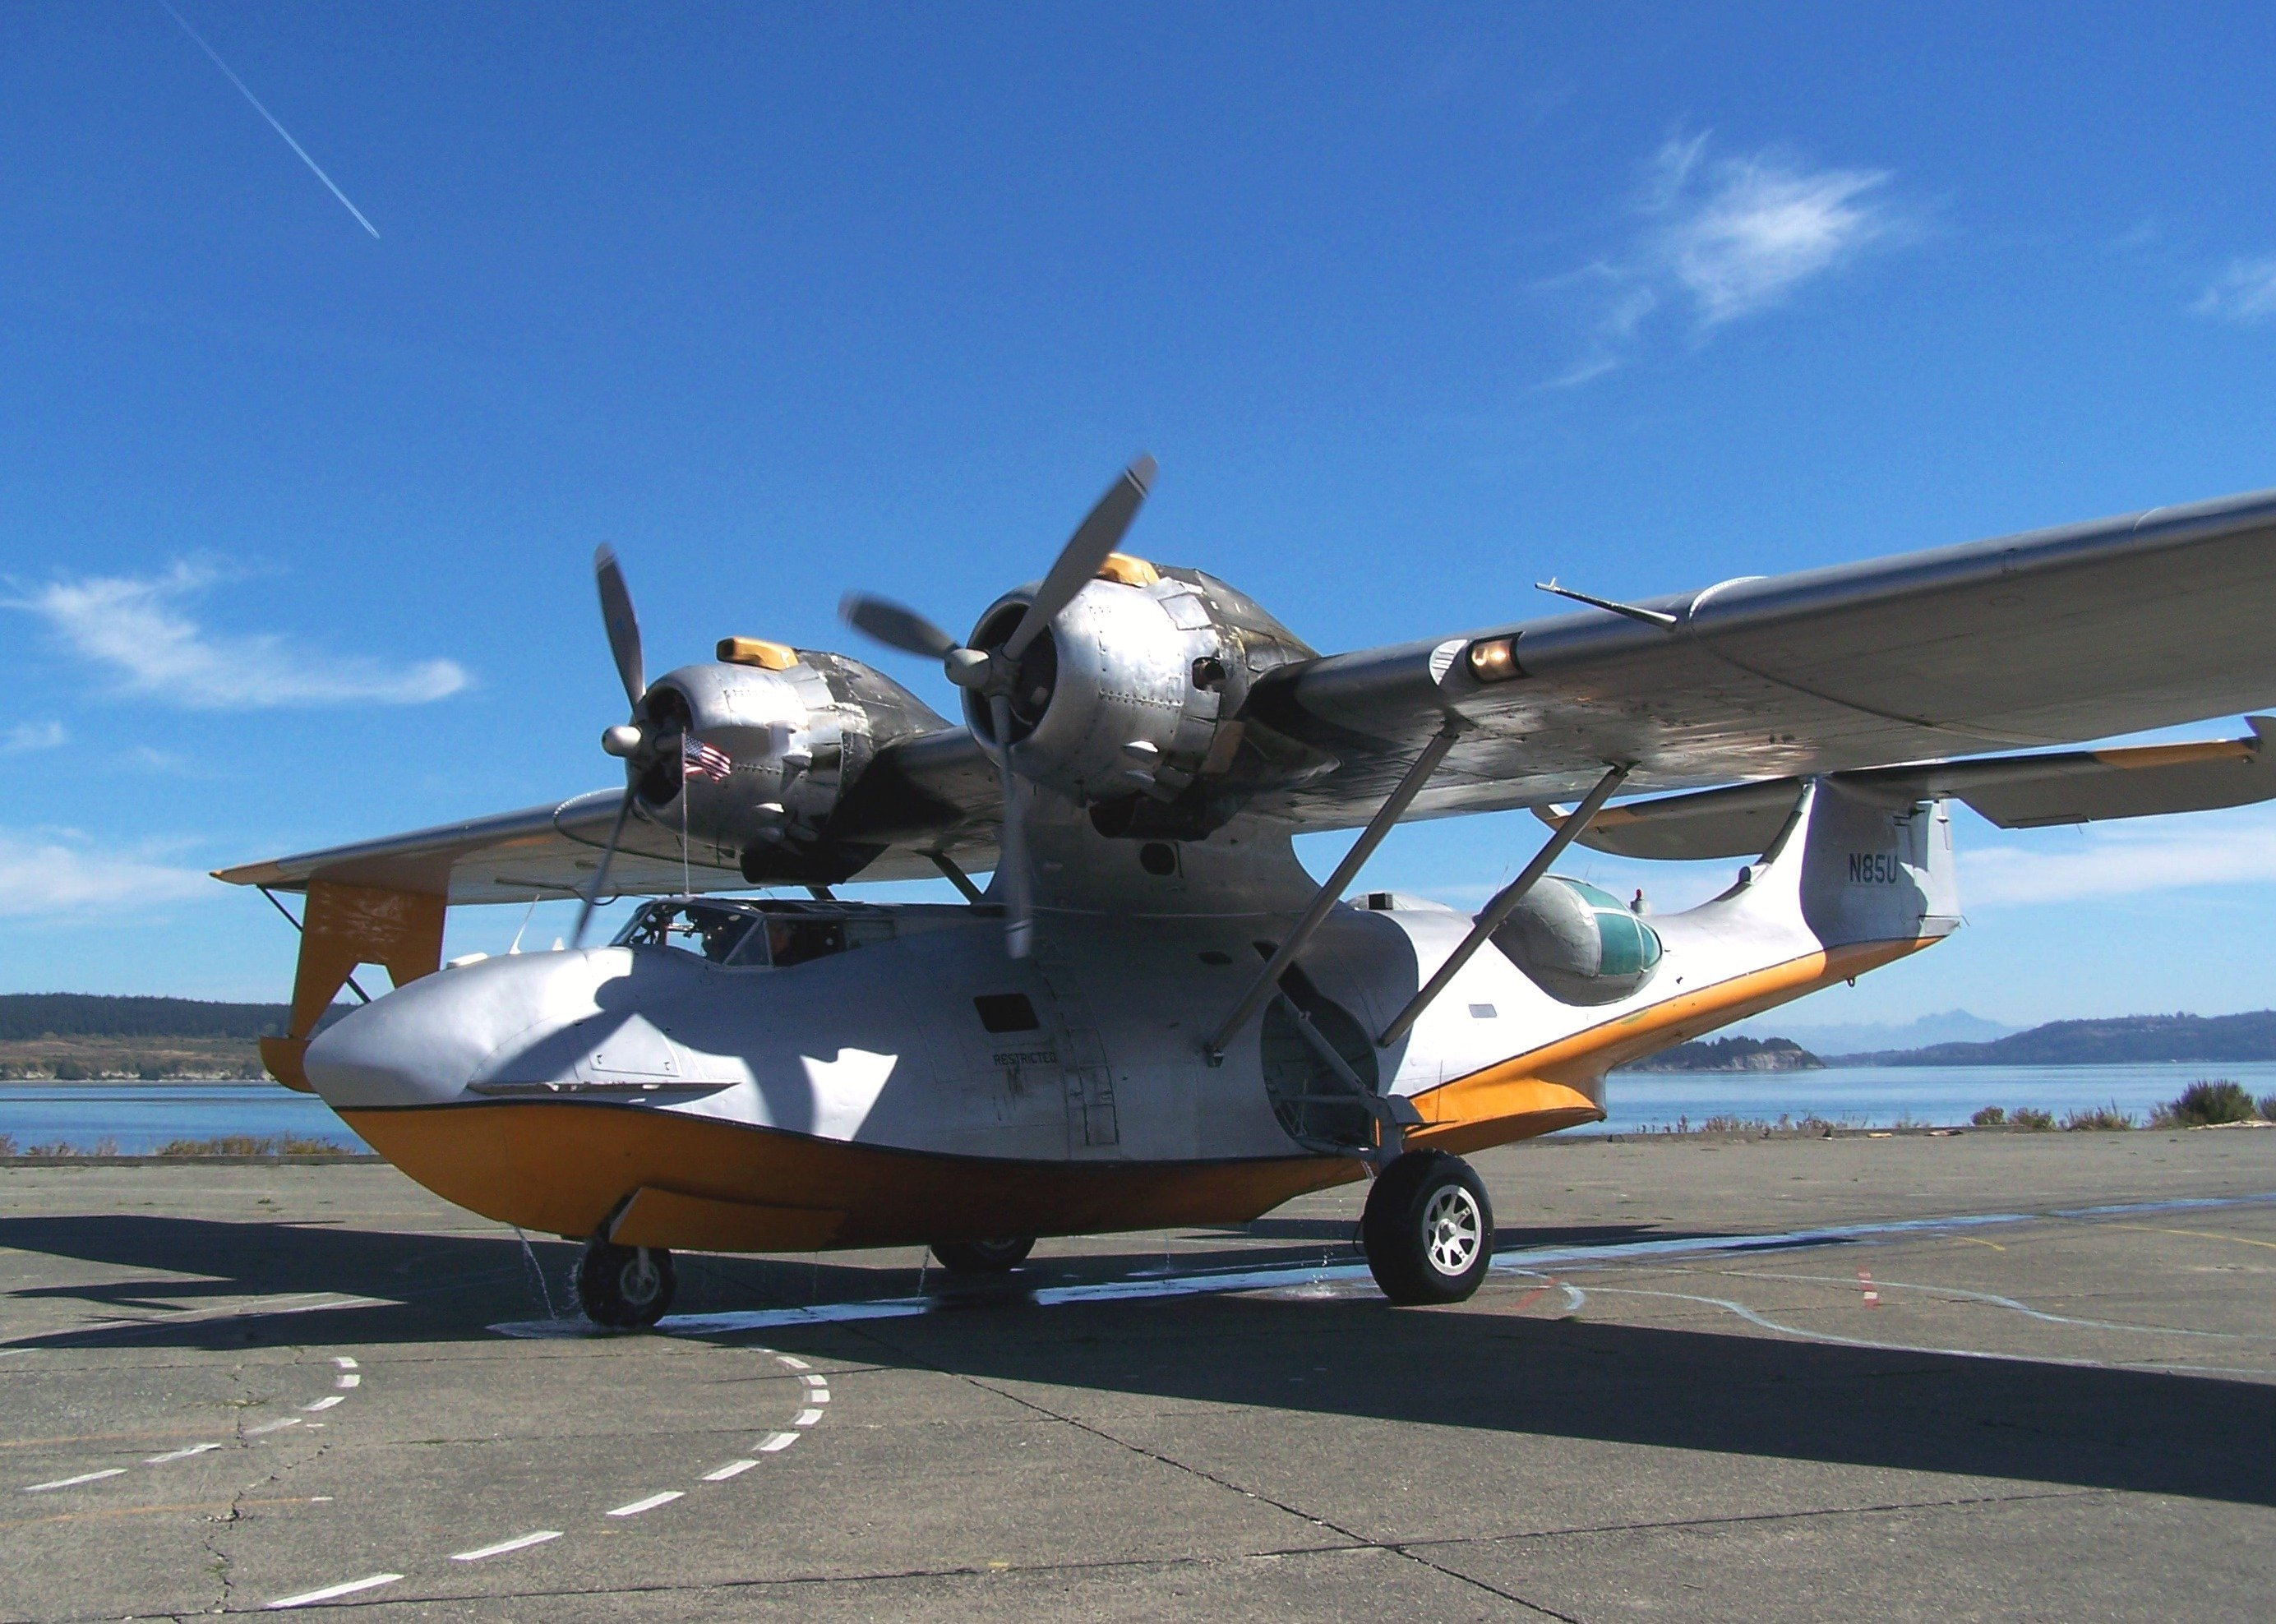 Firefighting variant of the PBY Catalina, file photo.